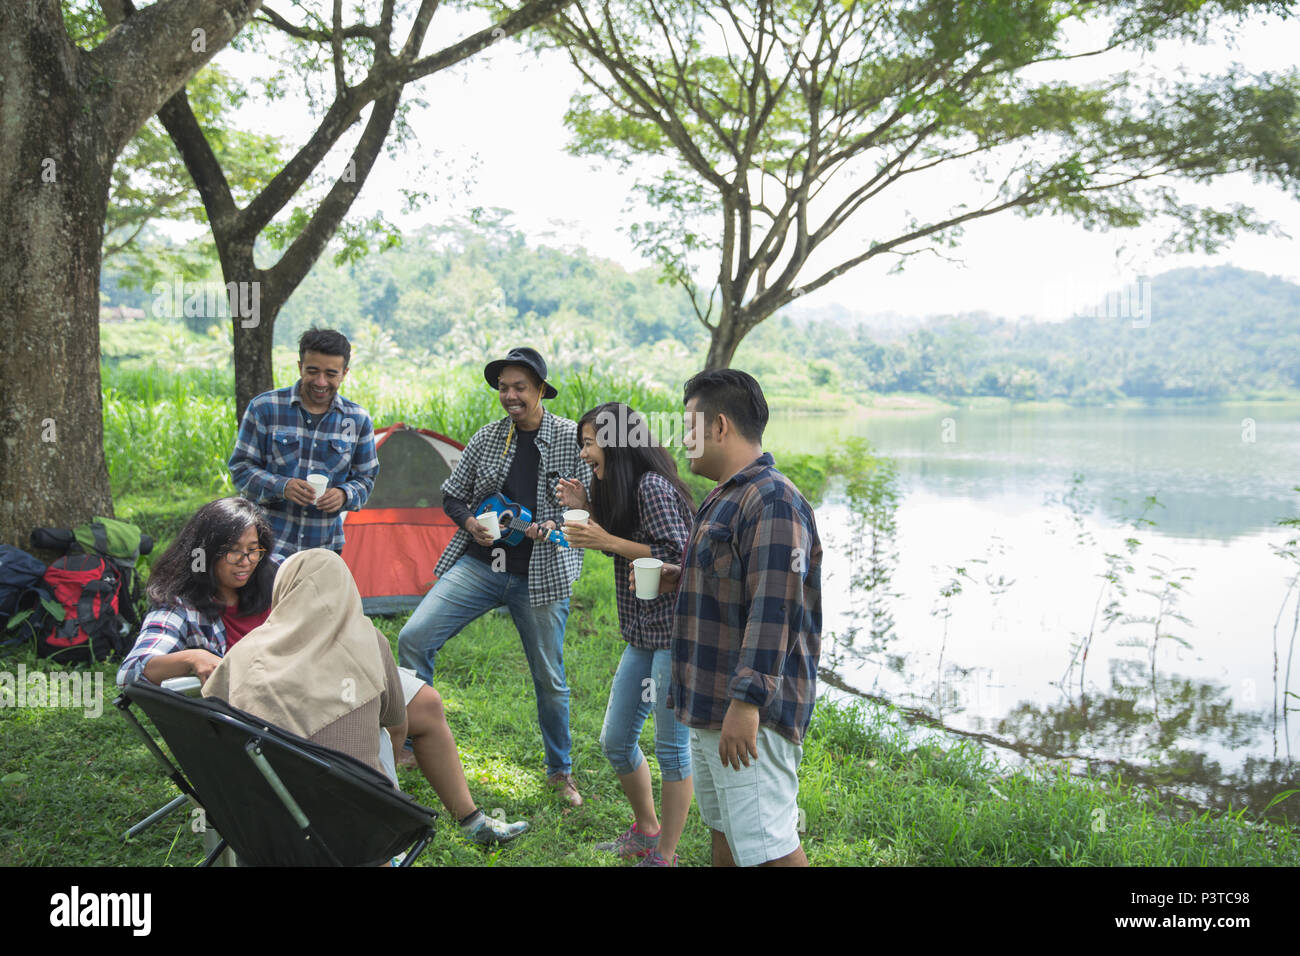 Friendship Hangout Traveling Destination  - Stock Image